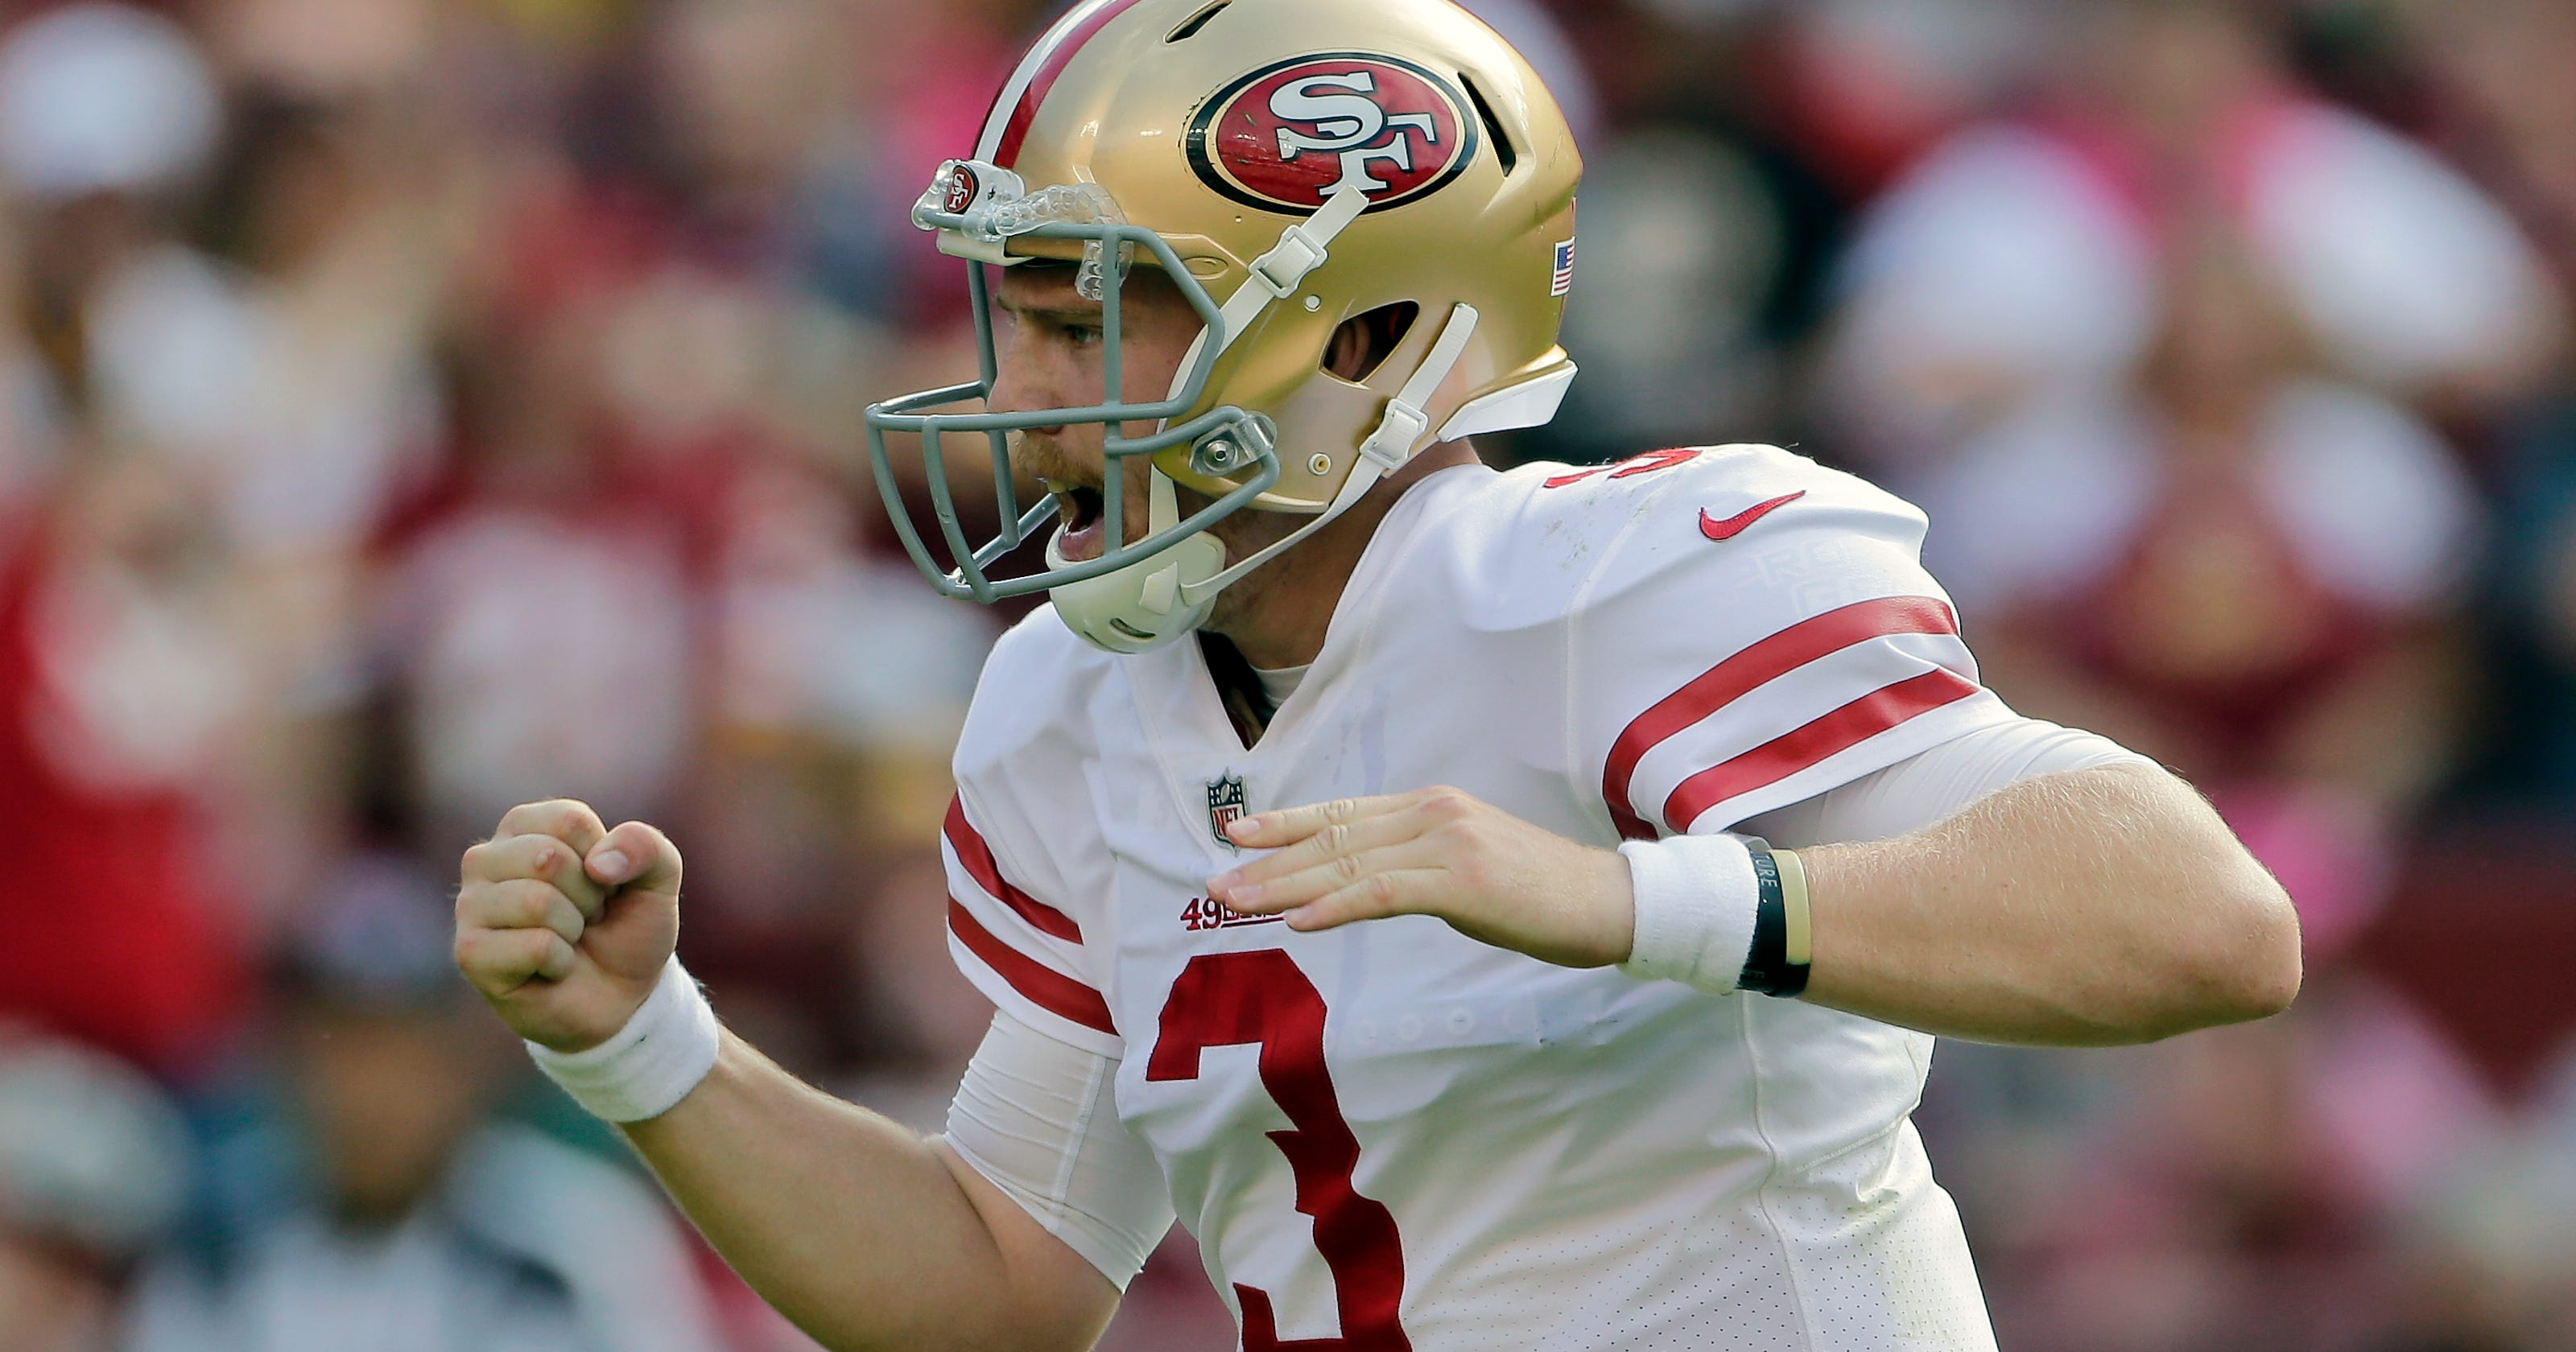 646a9070ddc Rookie C.J. Beathard ready to take over as 49ers starting QB